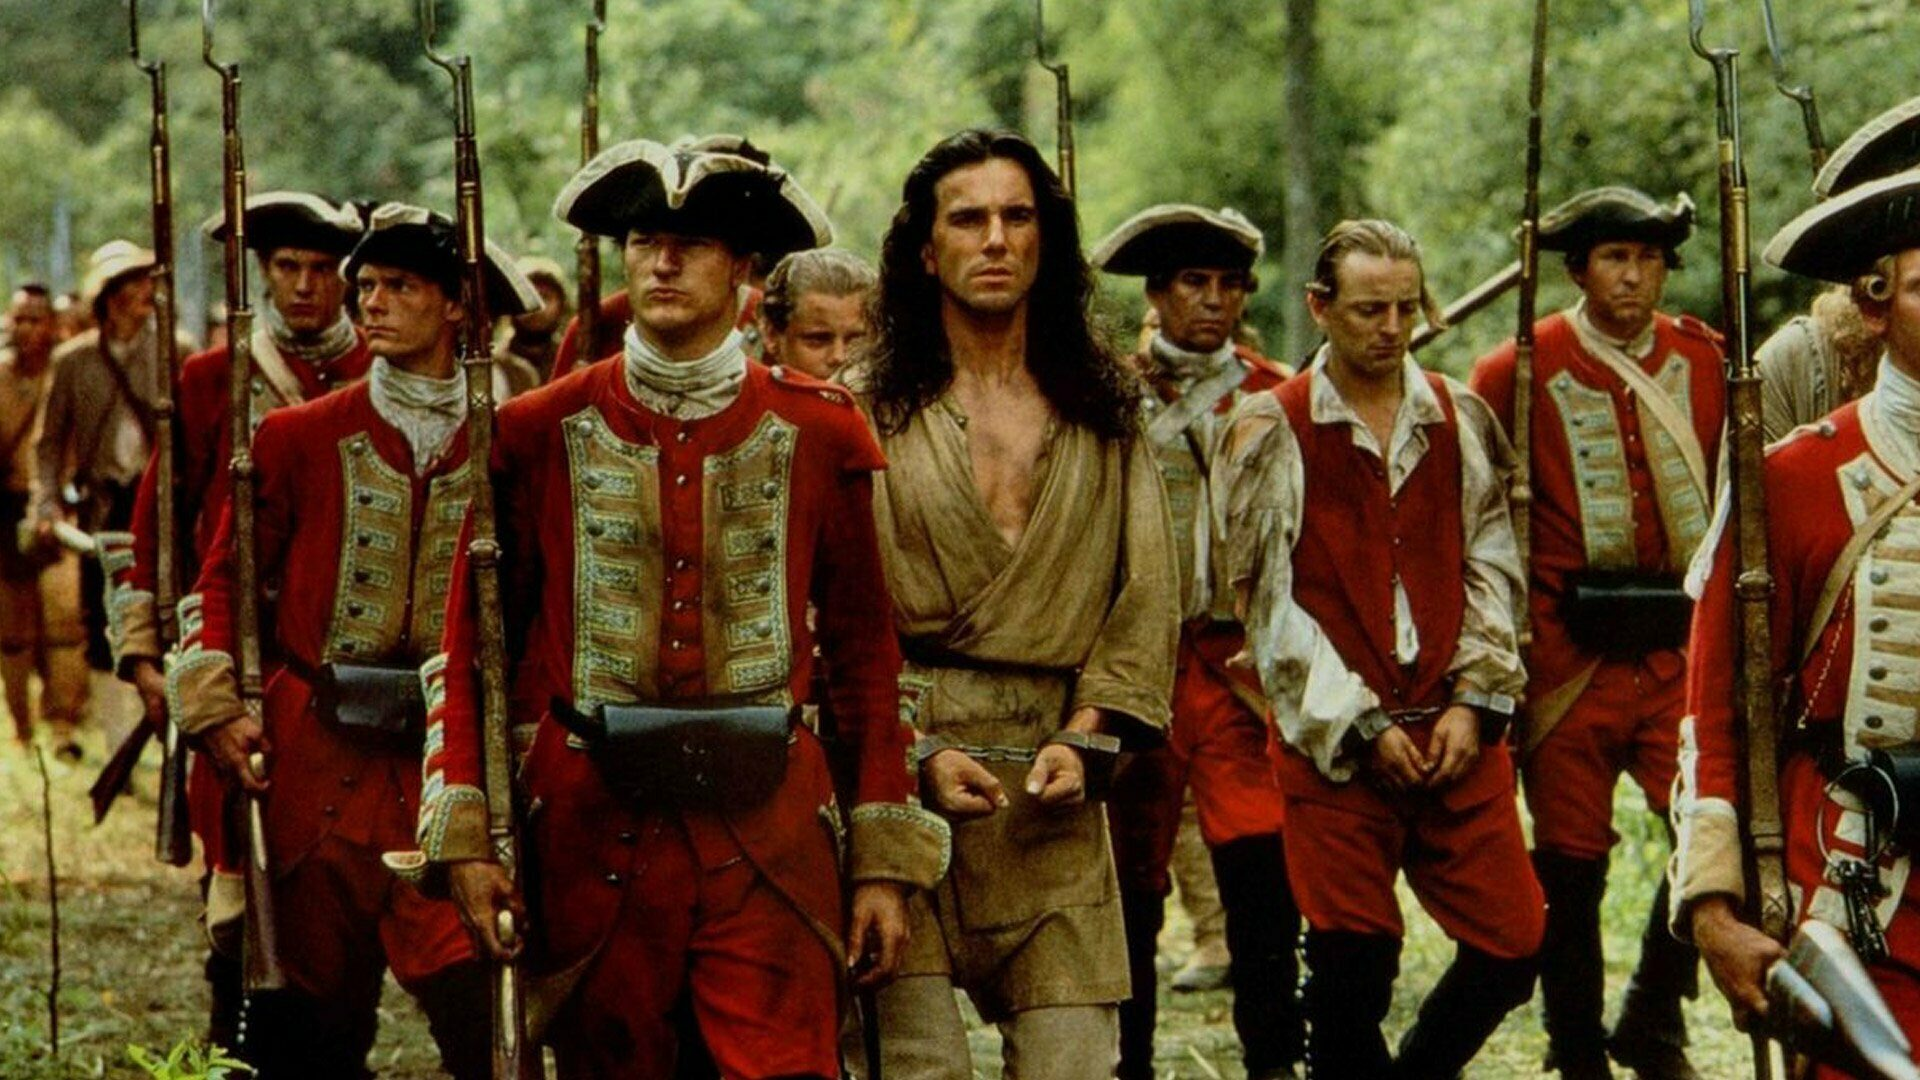 still from The Last of the Mohicans (Michael Mann, US 1992)